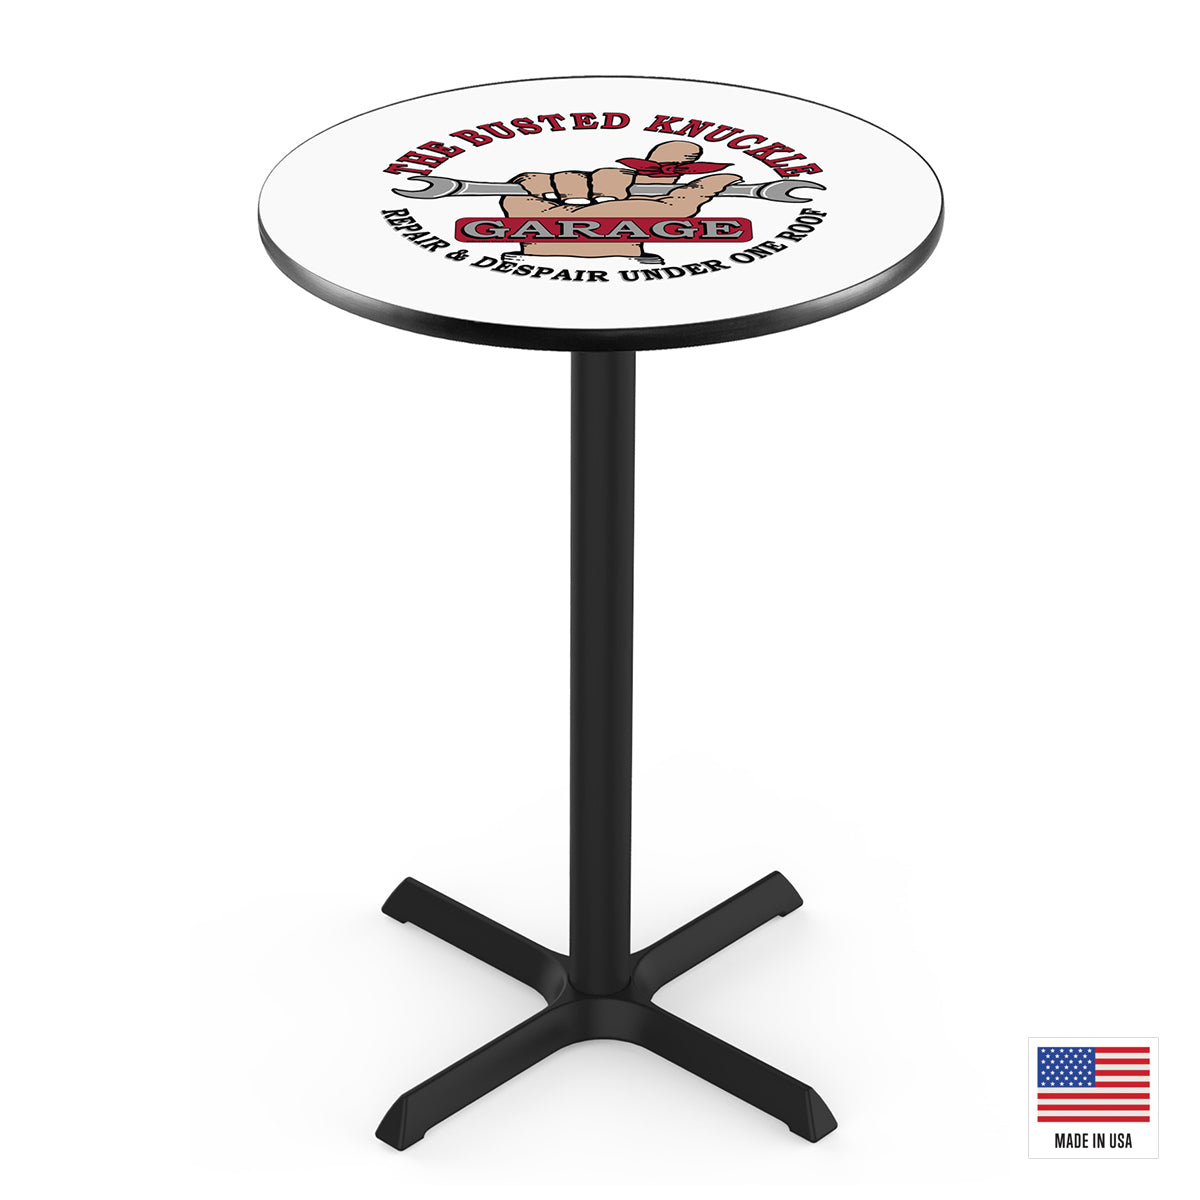 The Busted Knuckle Garage Logo Pub Table